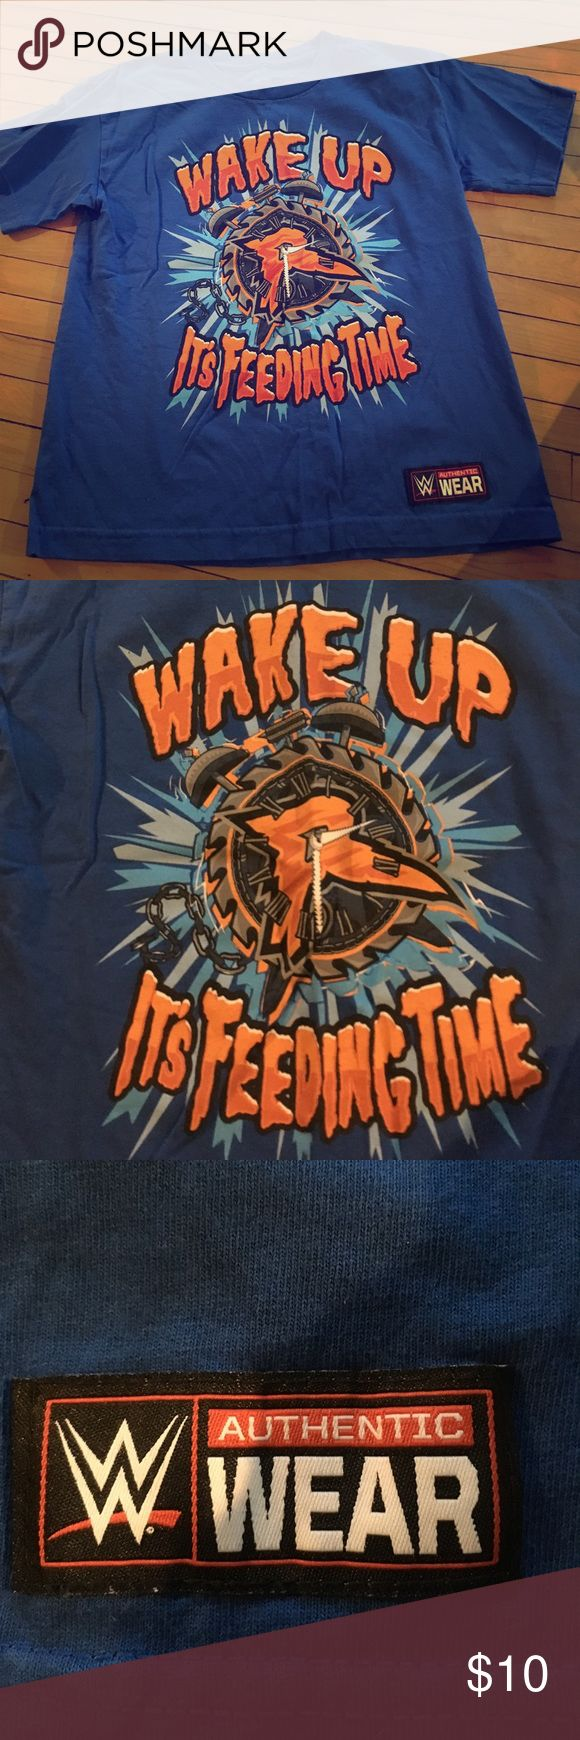 Youth size W Authentic Wear size M. 8/10 Boys size 8/10. Medium youth size. Authentic wear. Wake up it's feeding time. Feed me more. WWE Shirts & Tops